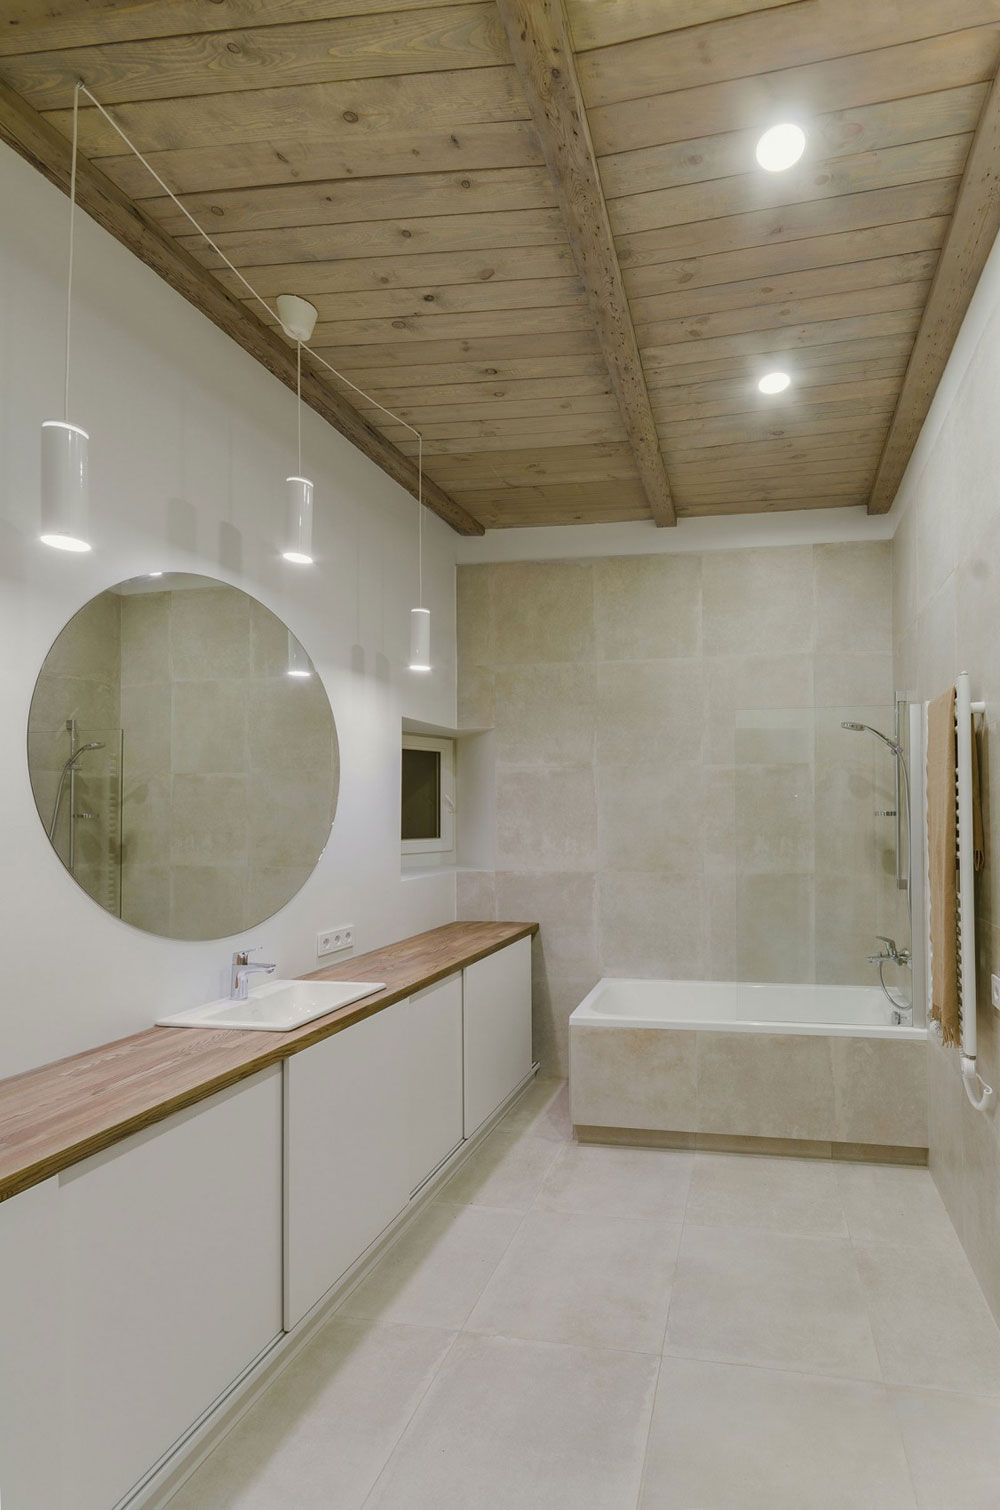 Looking for inspiration for modern bathroom interiors-1 Looking for inspiration for modern bathroom interiors?